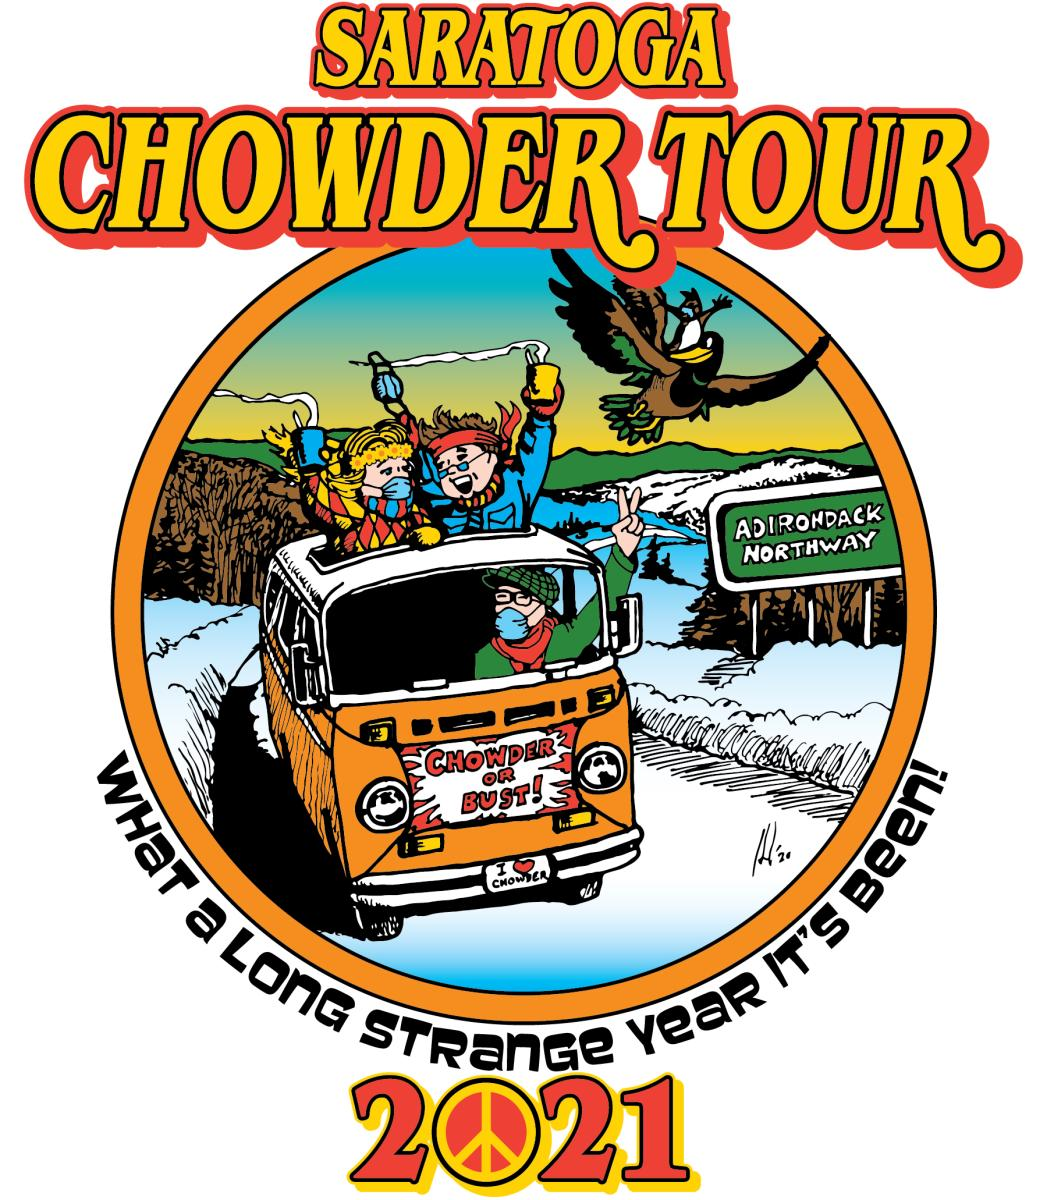 Saratoga Chowder Tour 2021